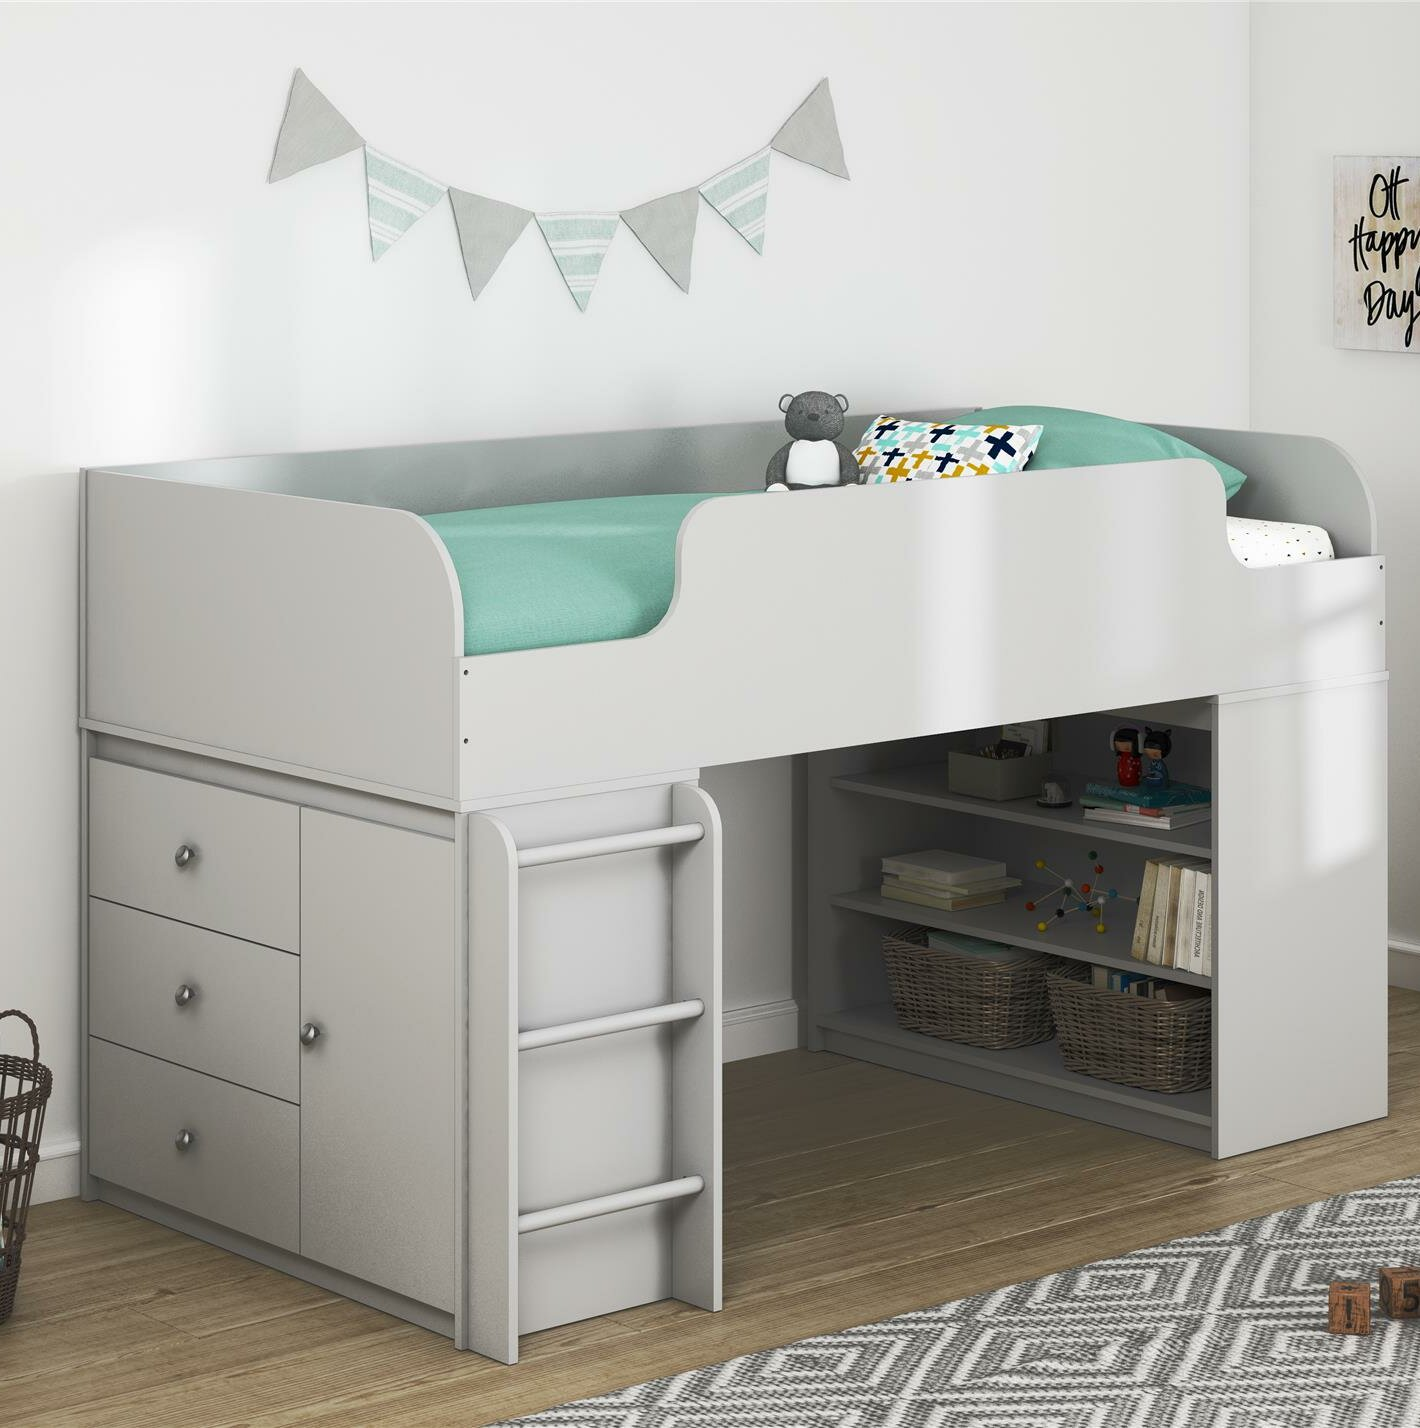 Twin Bed With Storage.Amak Panel Twin Bed With Bookcase And Storage Organizer